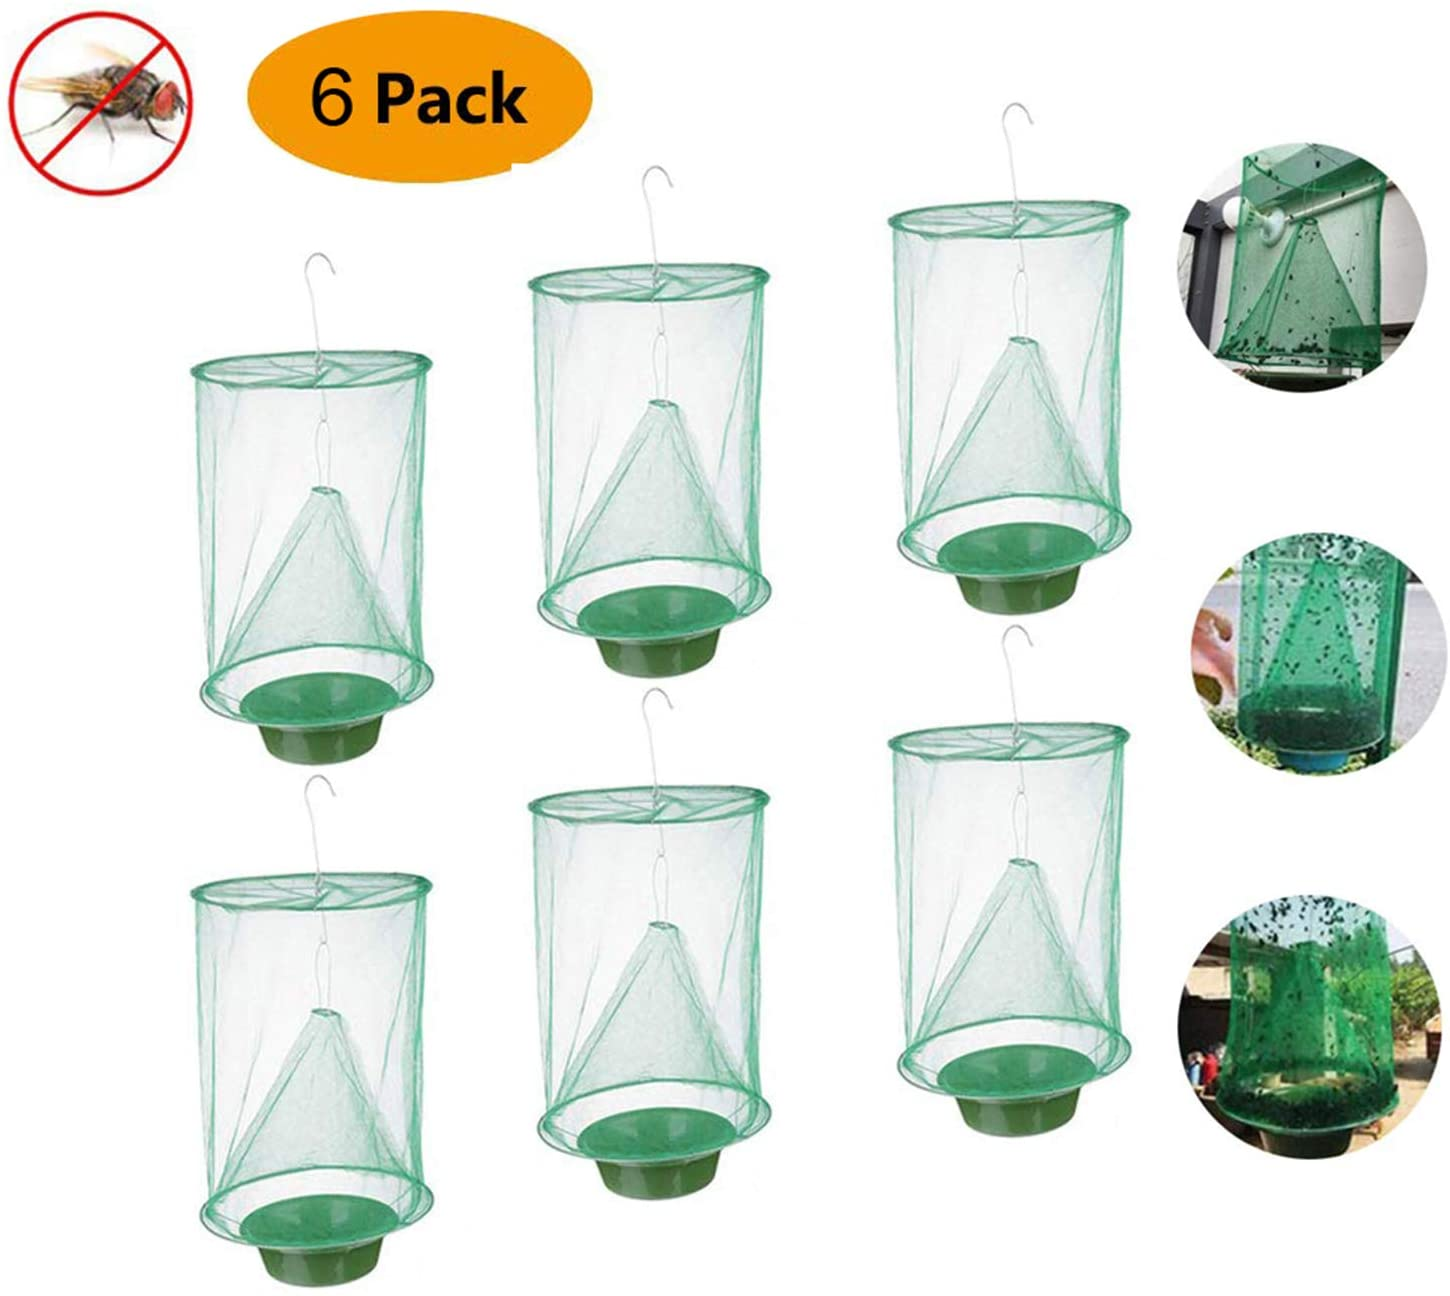 Sutify Ranch Fly Trap with Bait Tray Flay Catcher, Fly Catcher Cage The Most Effective Trap Ever Made with Food Bait Flay Catcher for Outdoor, Family Farms, Parks(6pcs)